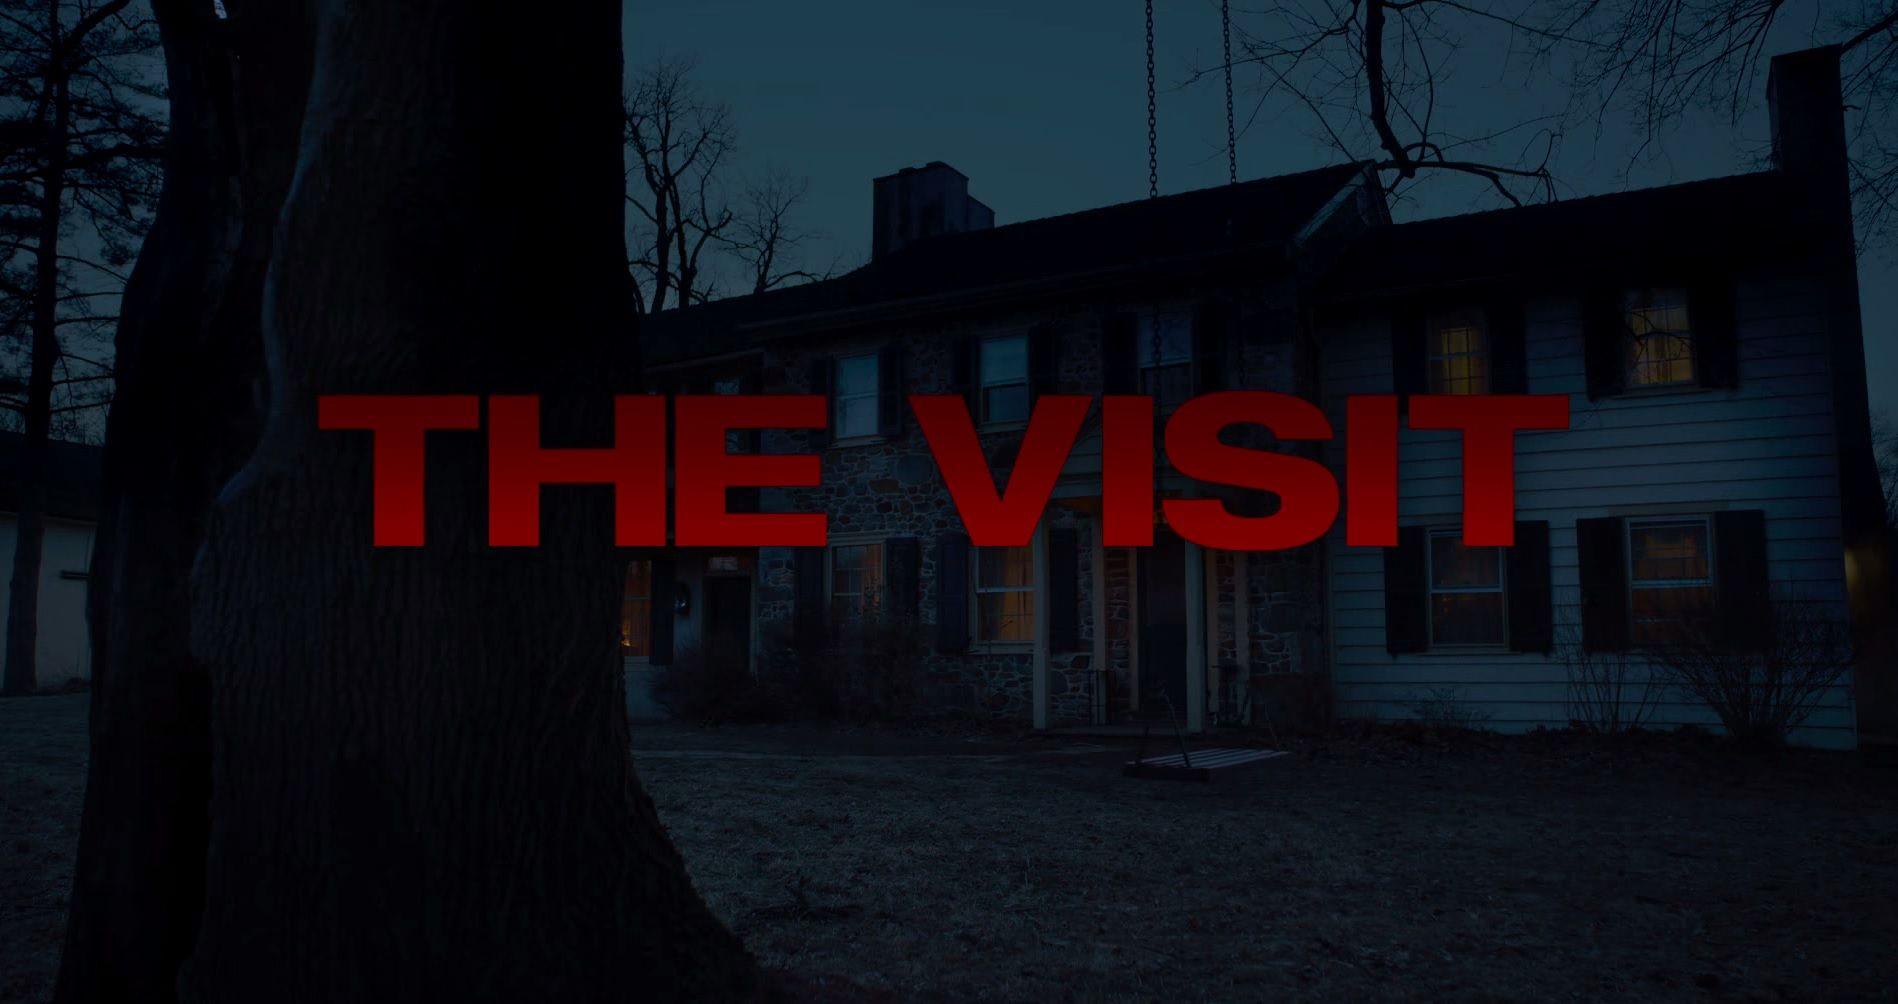 the-return-of-m-night-shyamalan-the-visit-m-night-shyamalan-the-visit-443352